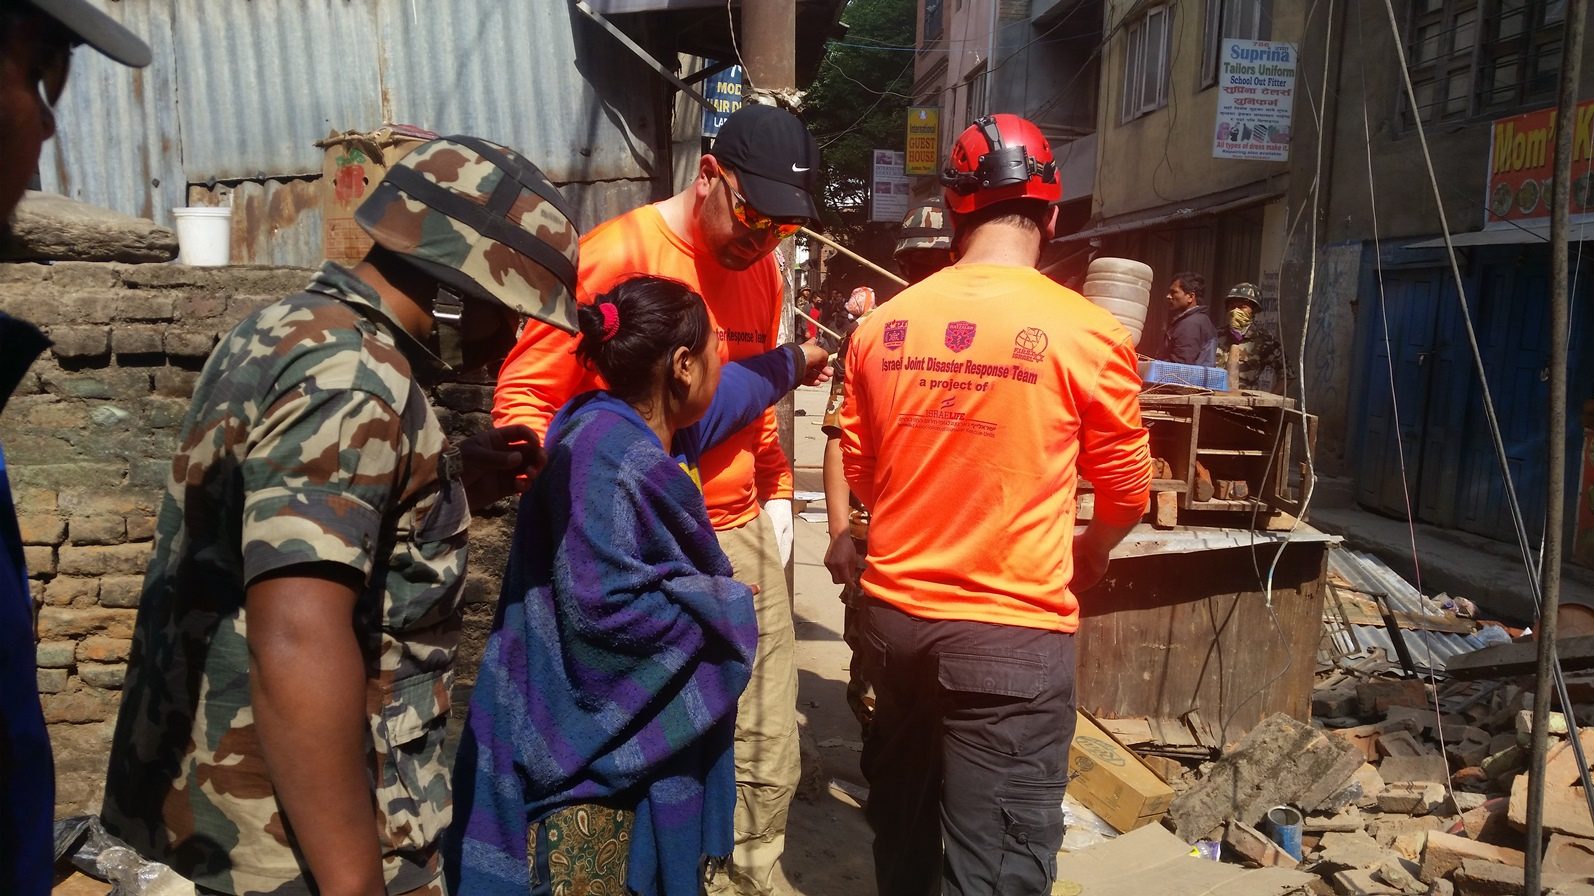 Israeli search-and-rescue volunteers in Nepal, April 2015. Photo courtesy of United Hatzalah/Israelife